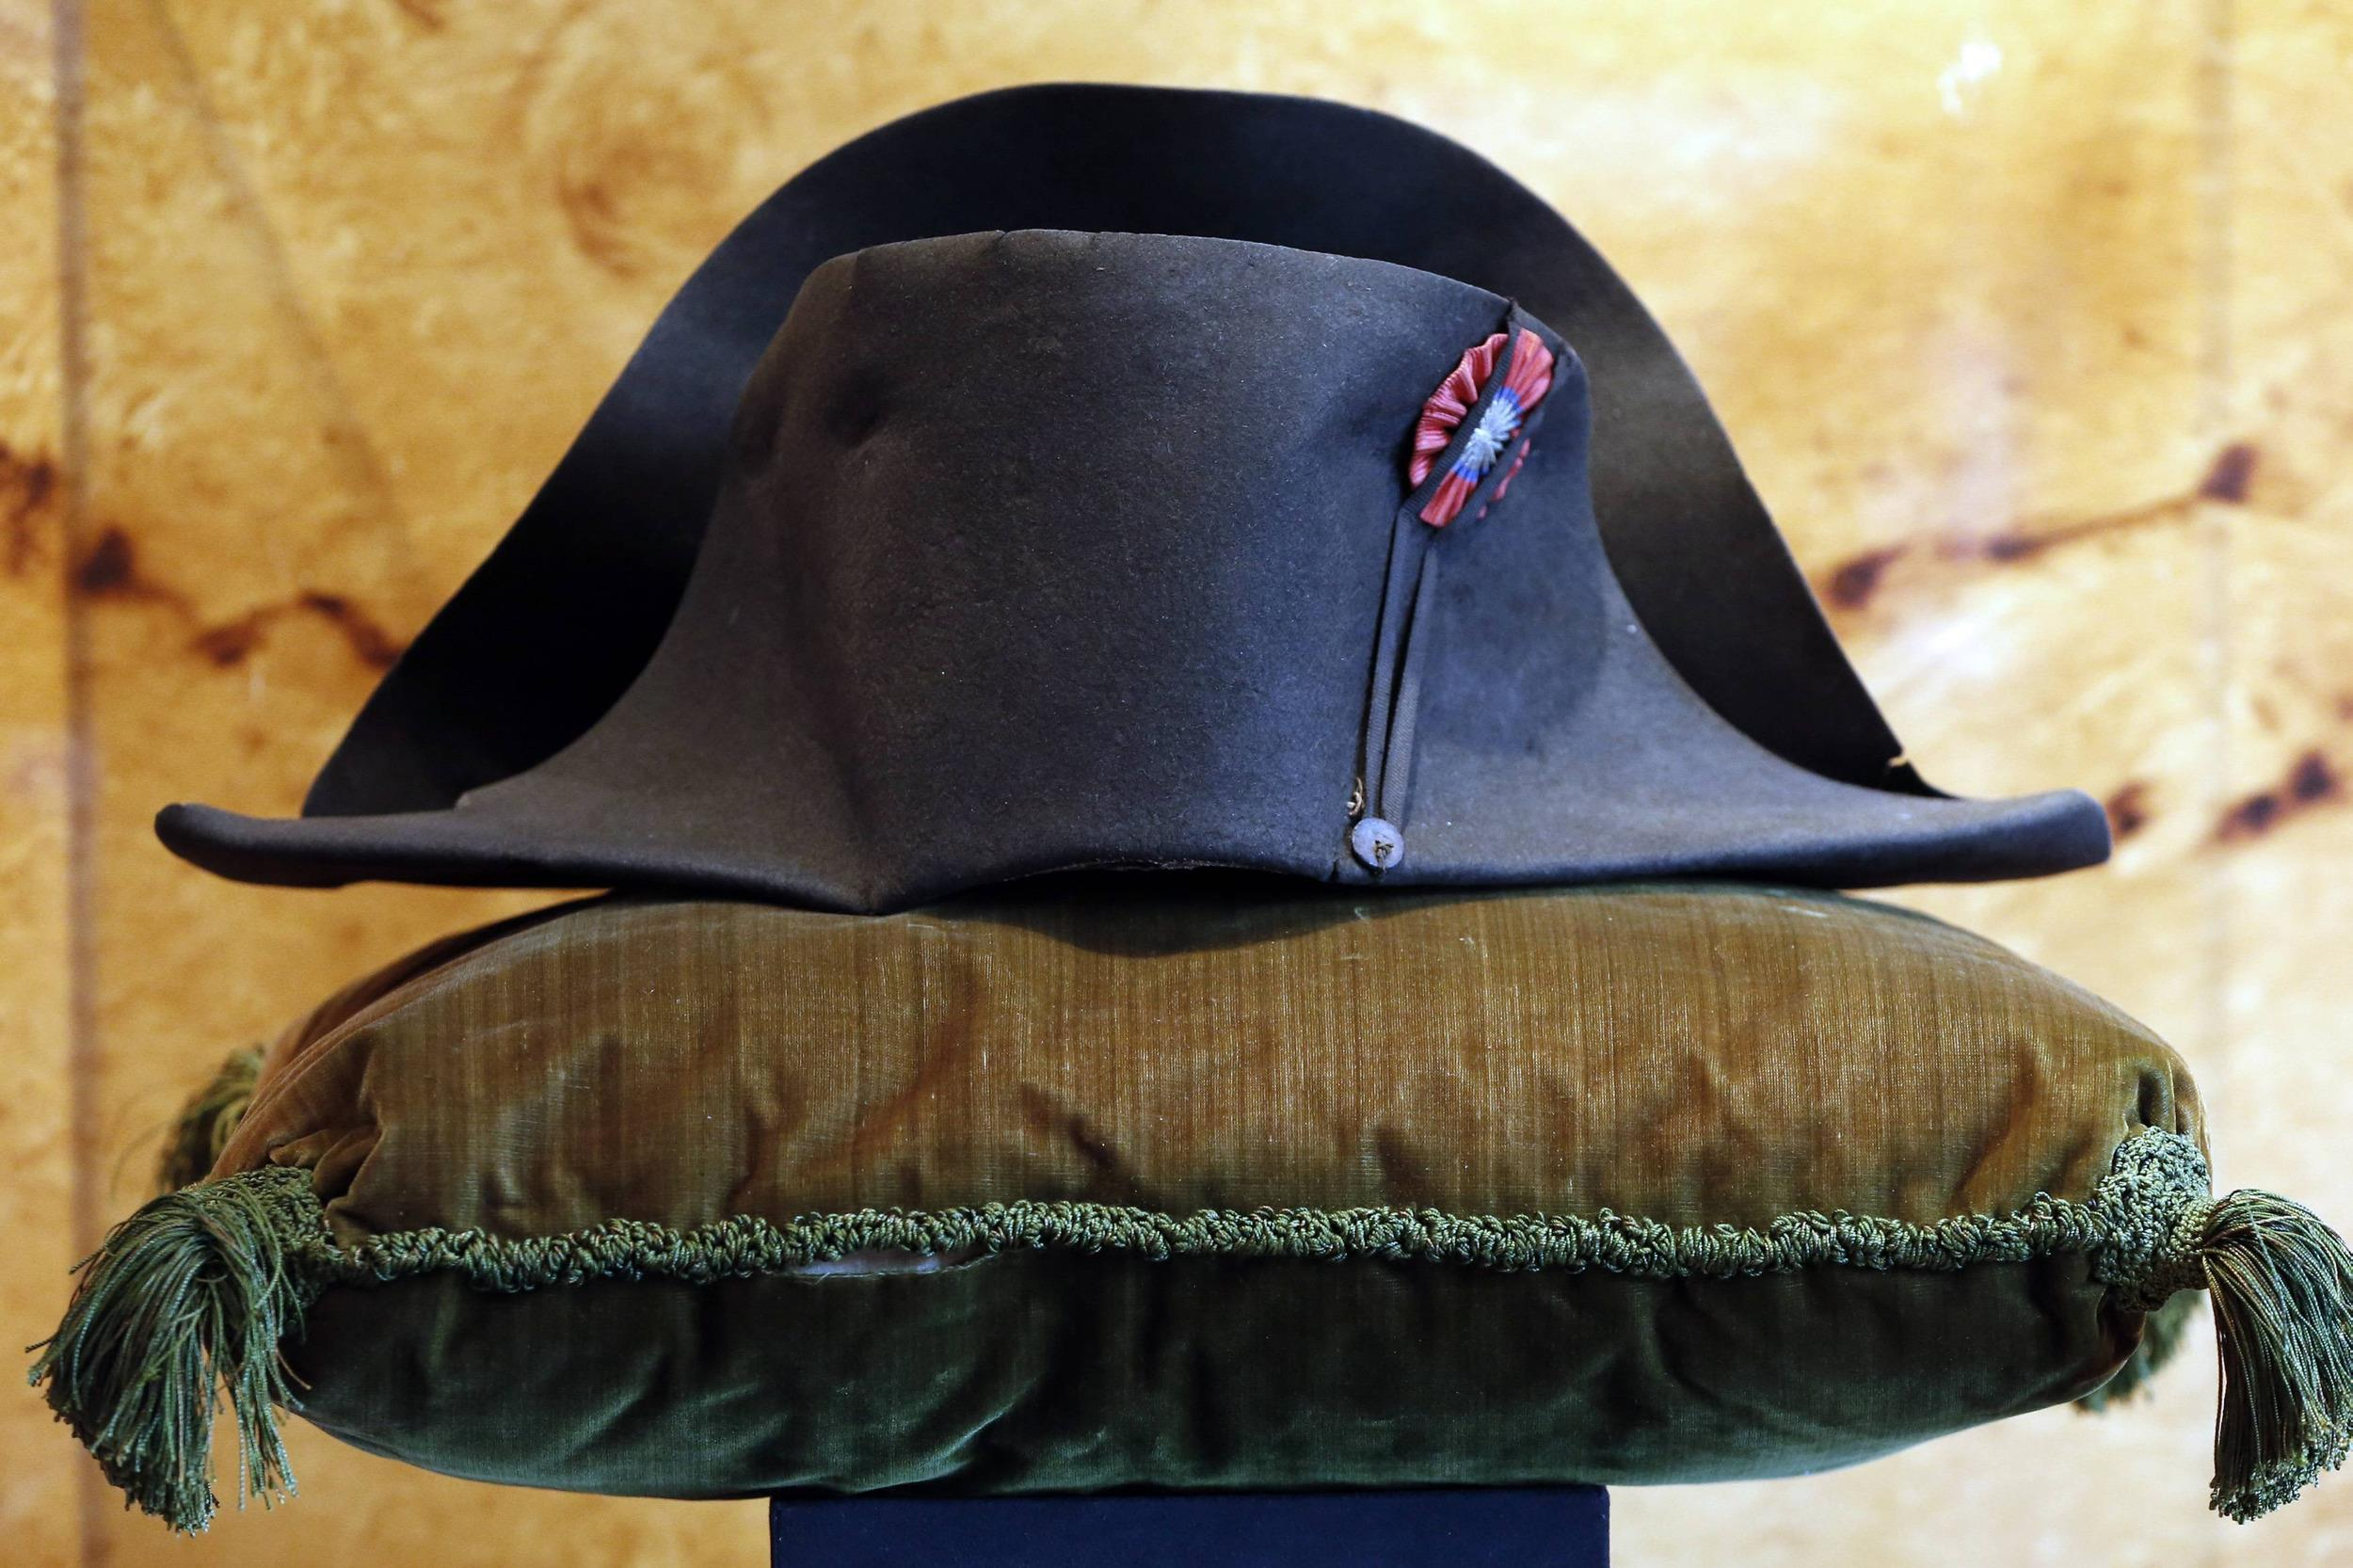 Napoleon's Hat Auctioned to South Korean for $2.4 Million